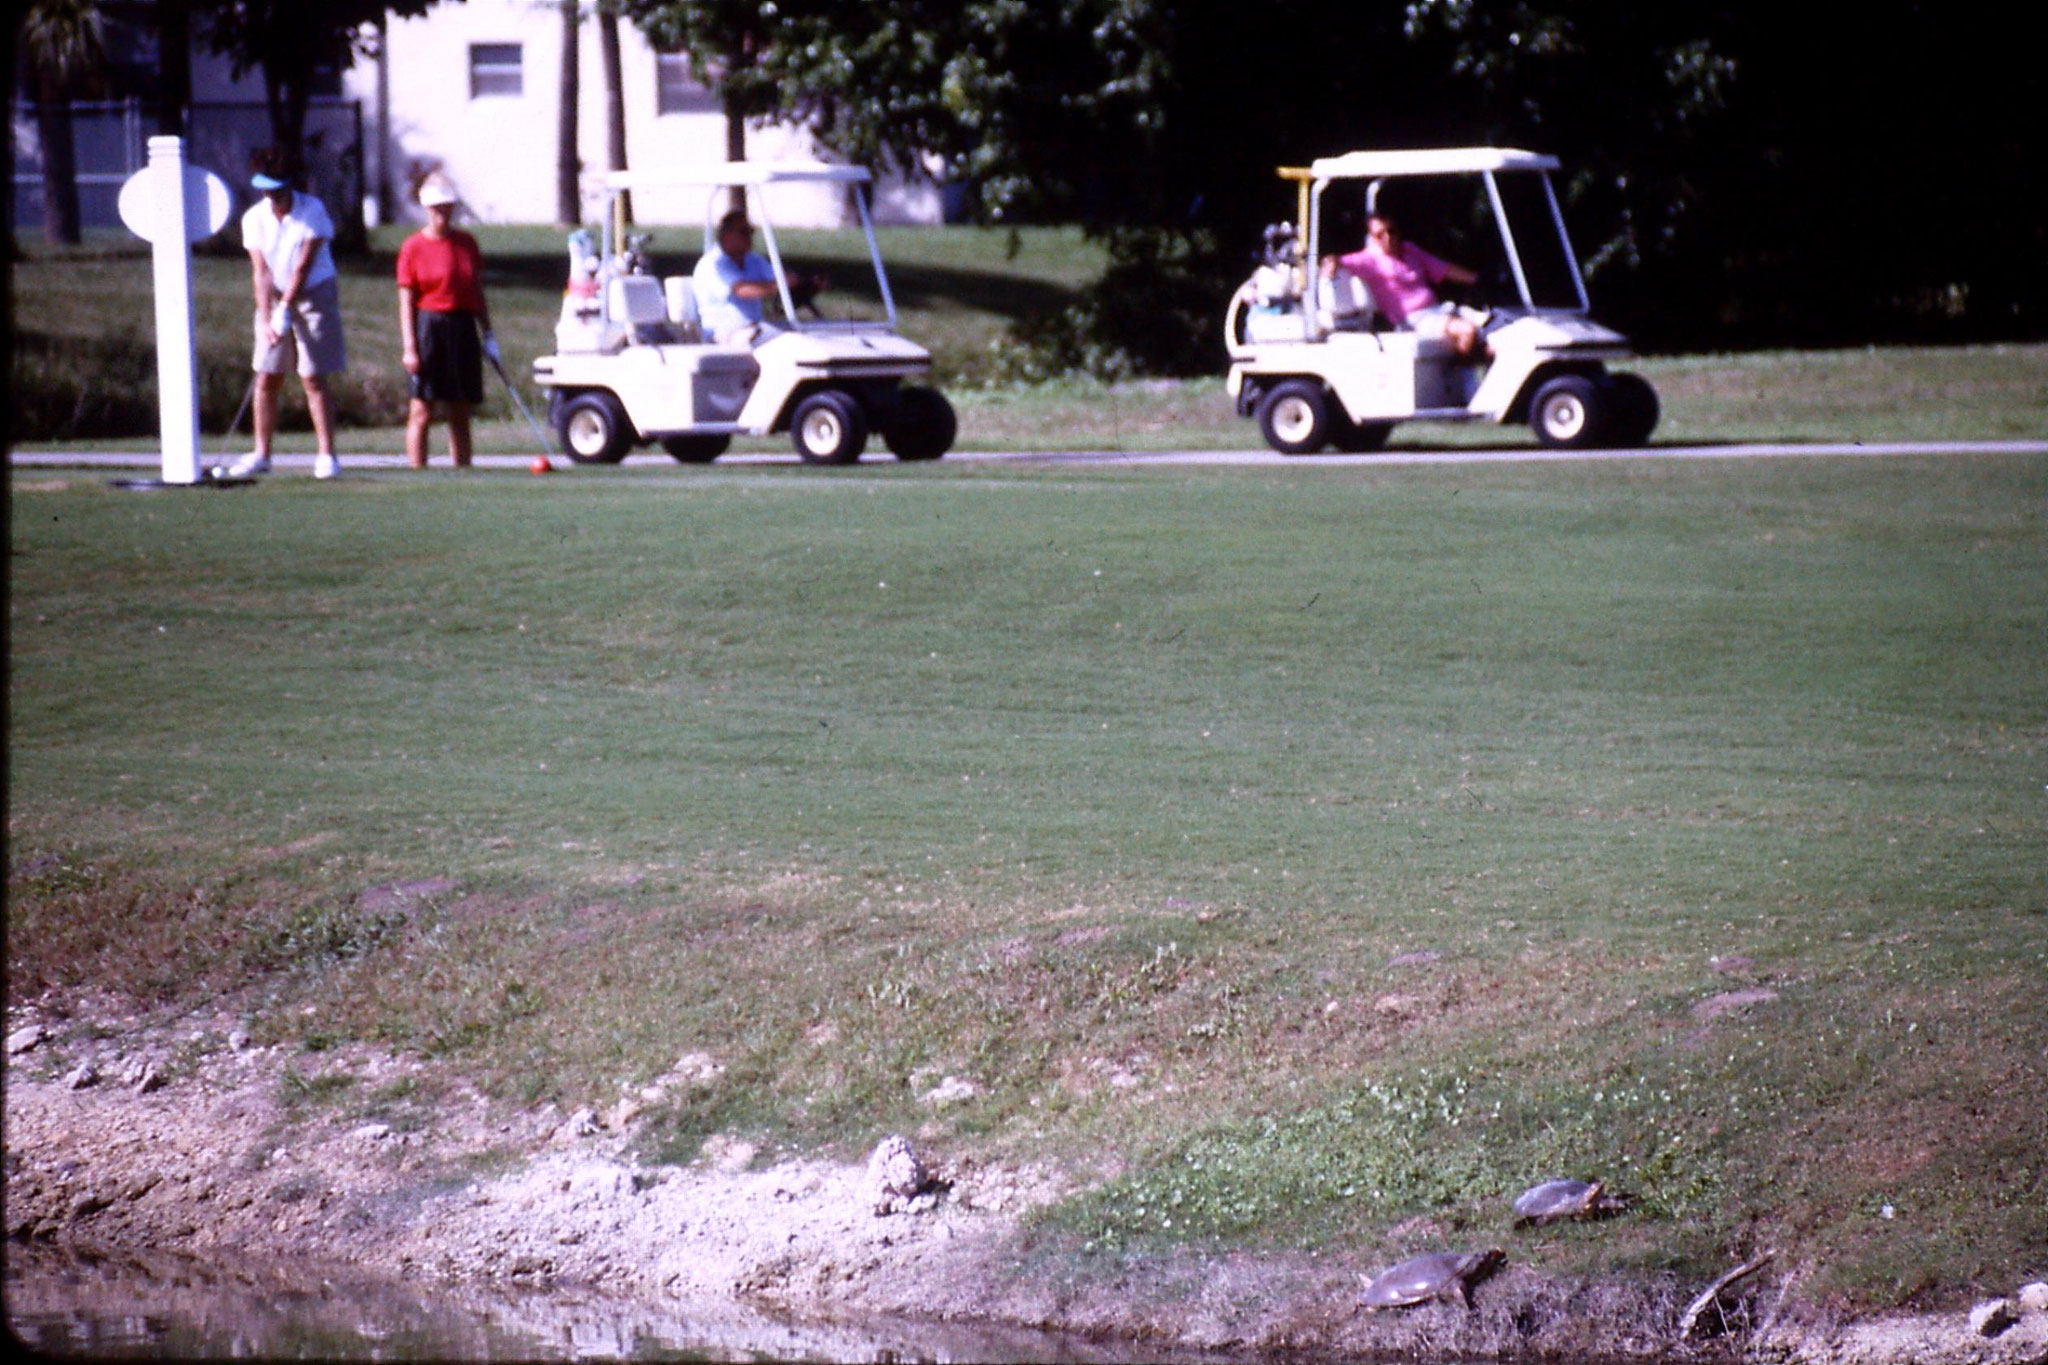 7/1/1991: 29: outside C's flat, golfers and turtles